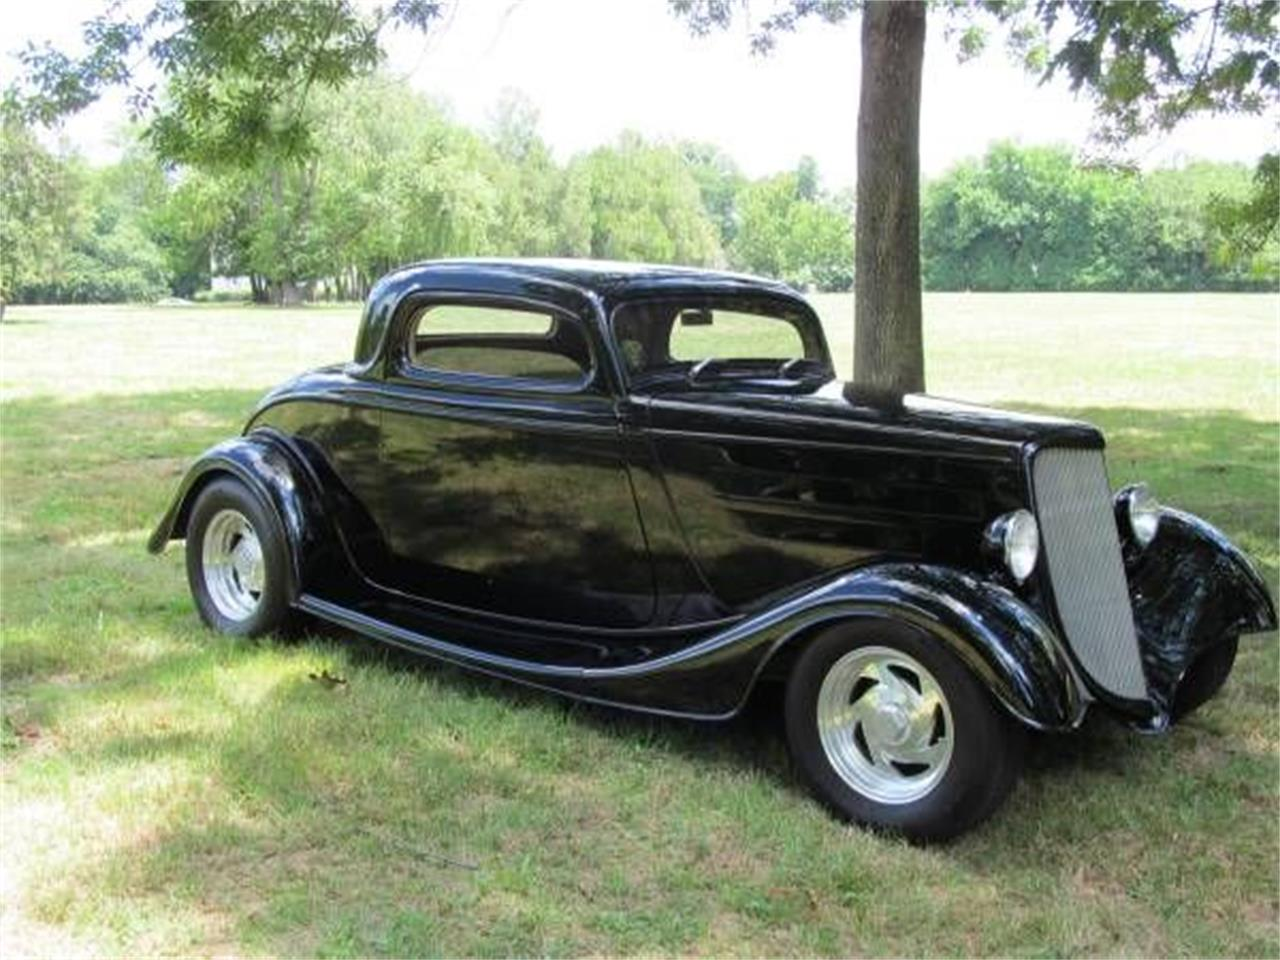 Large picture of 34 coupe of2w